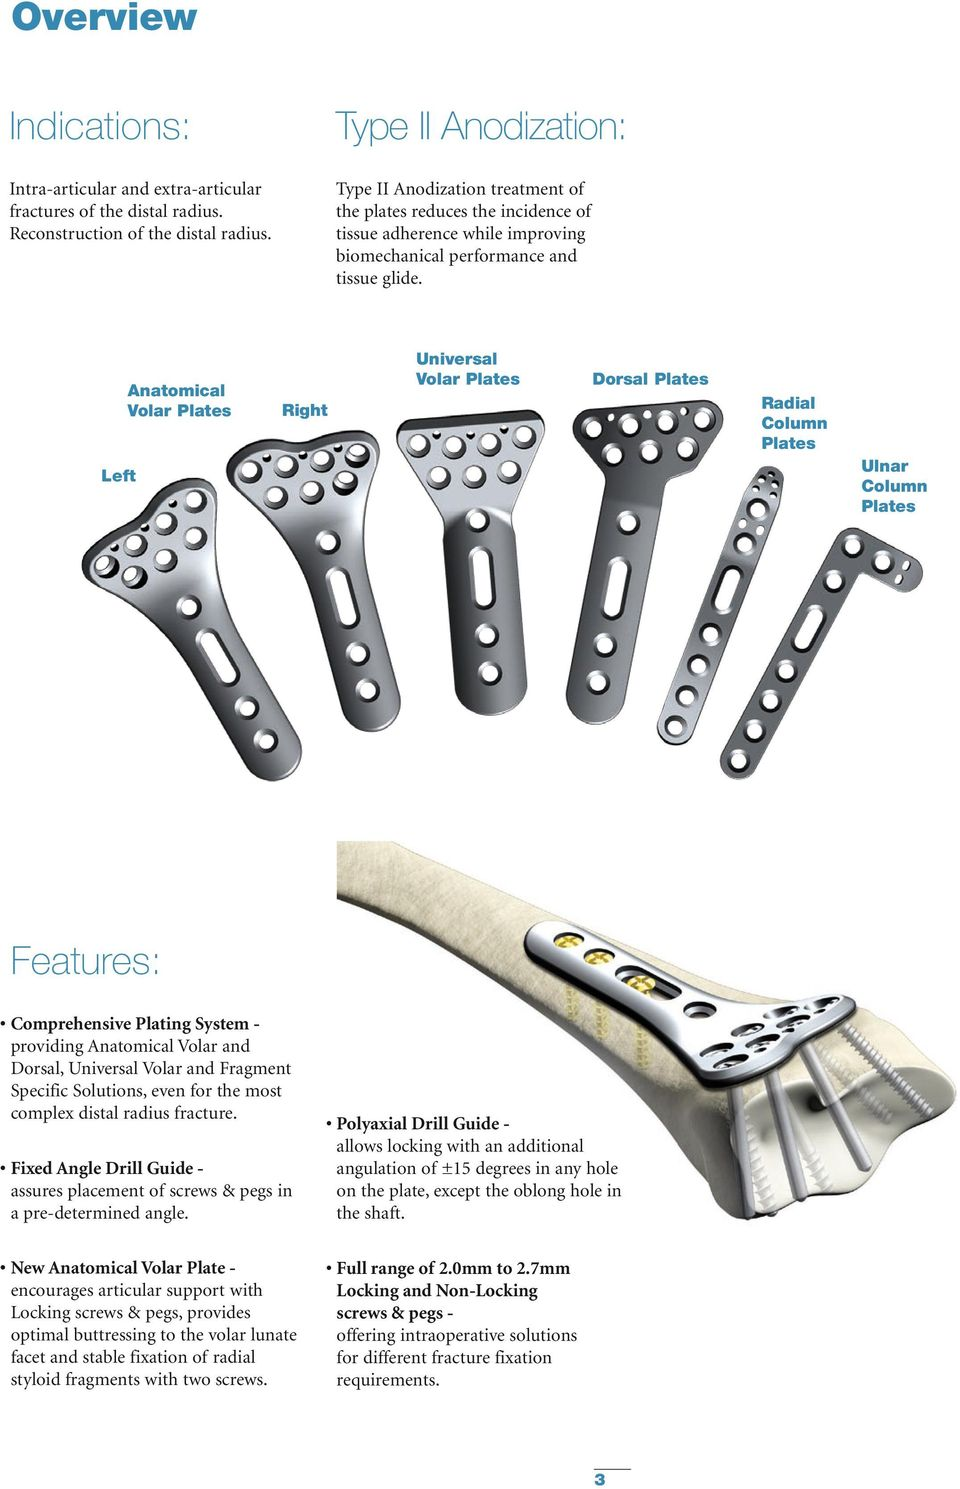 Left Anatomical Volar Plates Right Universal Volar Plates Dorsal Plates Radial Column Plates Ulnar Column Plates Features: Comprehensive Plating System - providing Anatomical Volar and Dorsal,